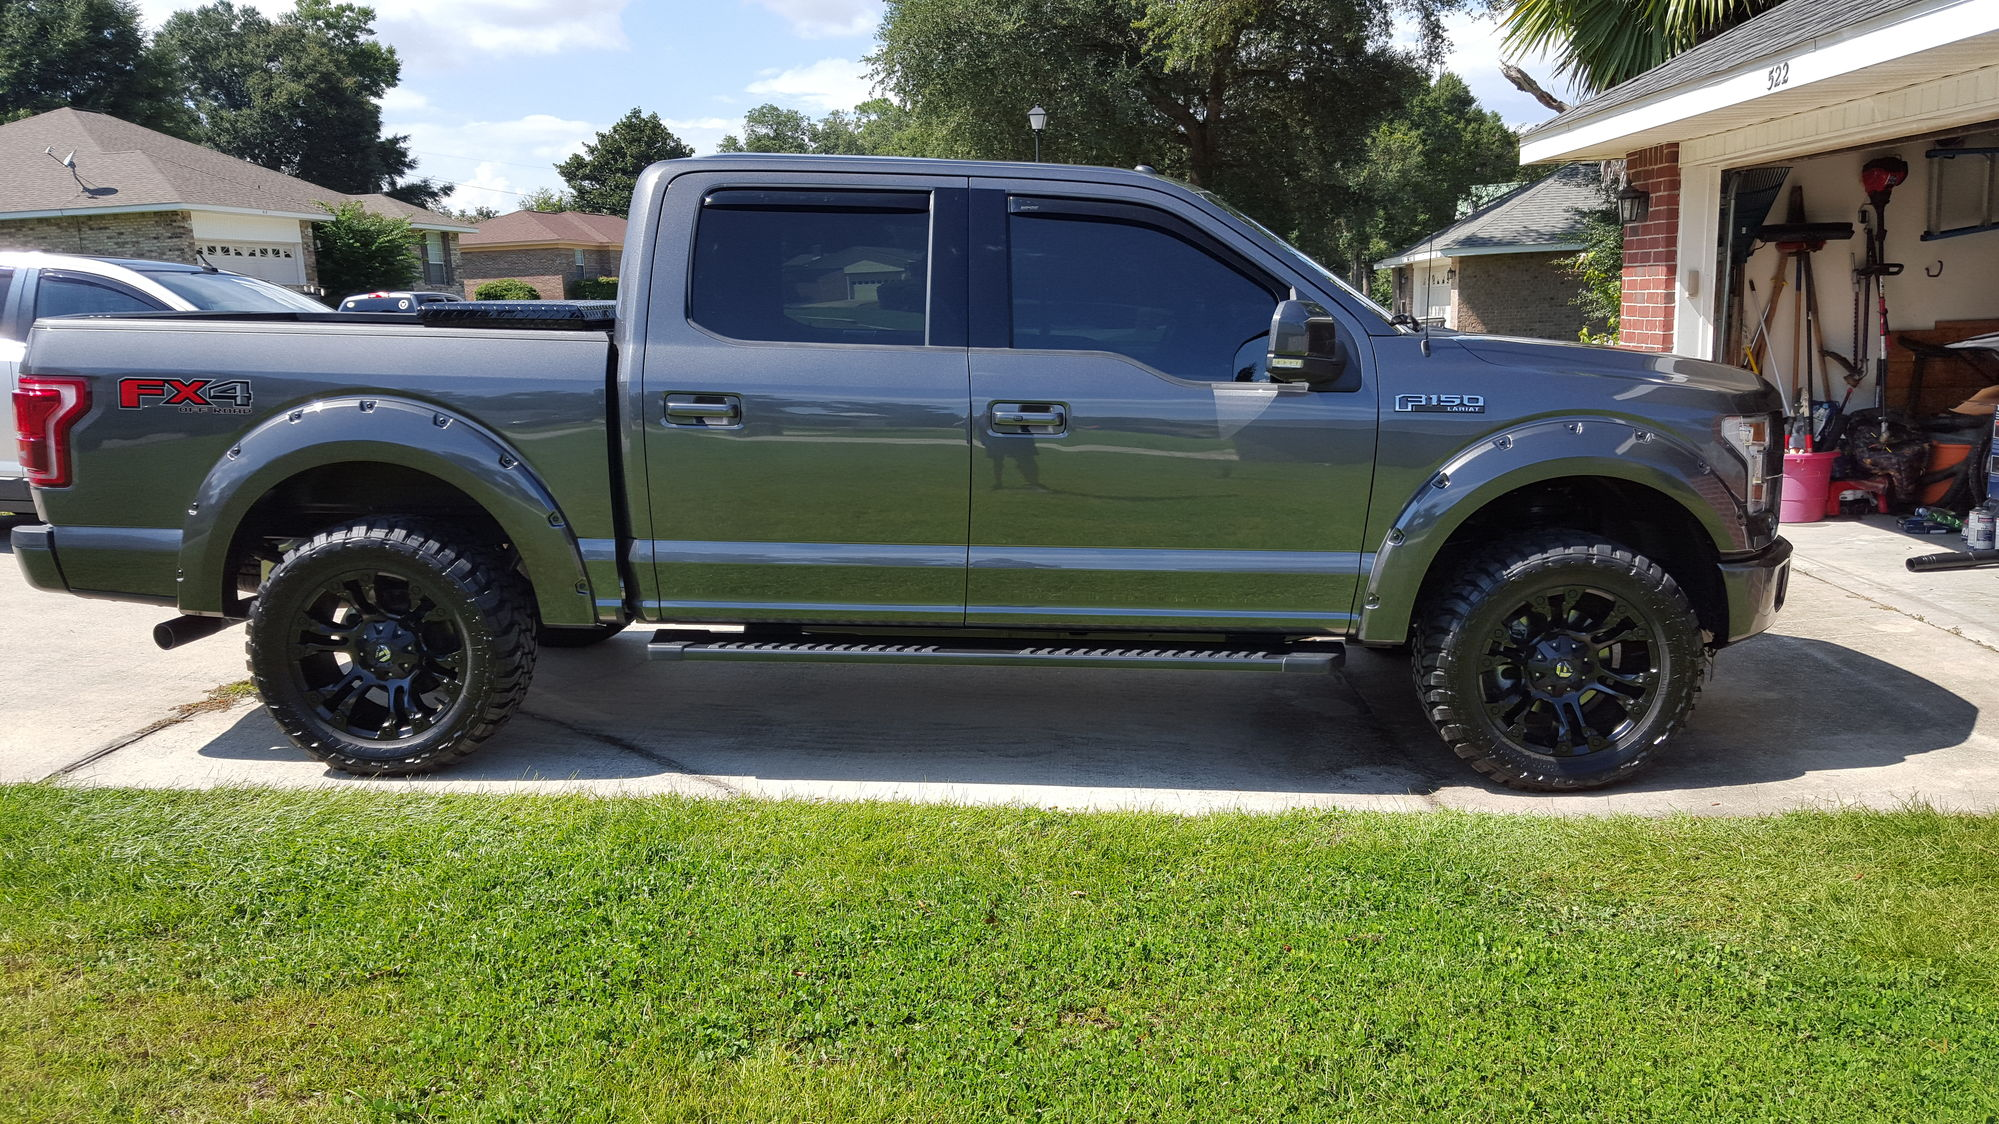 2013 F150 Tires >> 33'S? - Ford F150 Forum - Community of Ford Truck Fans